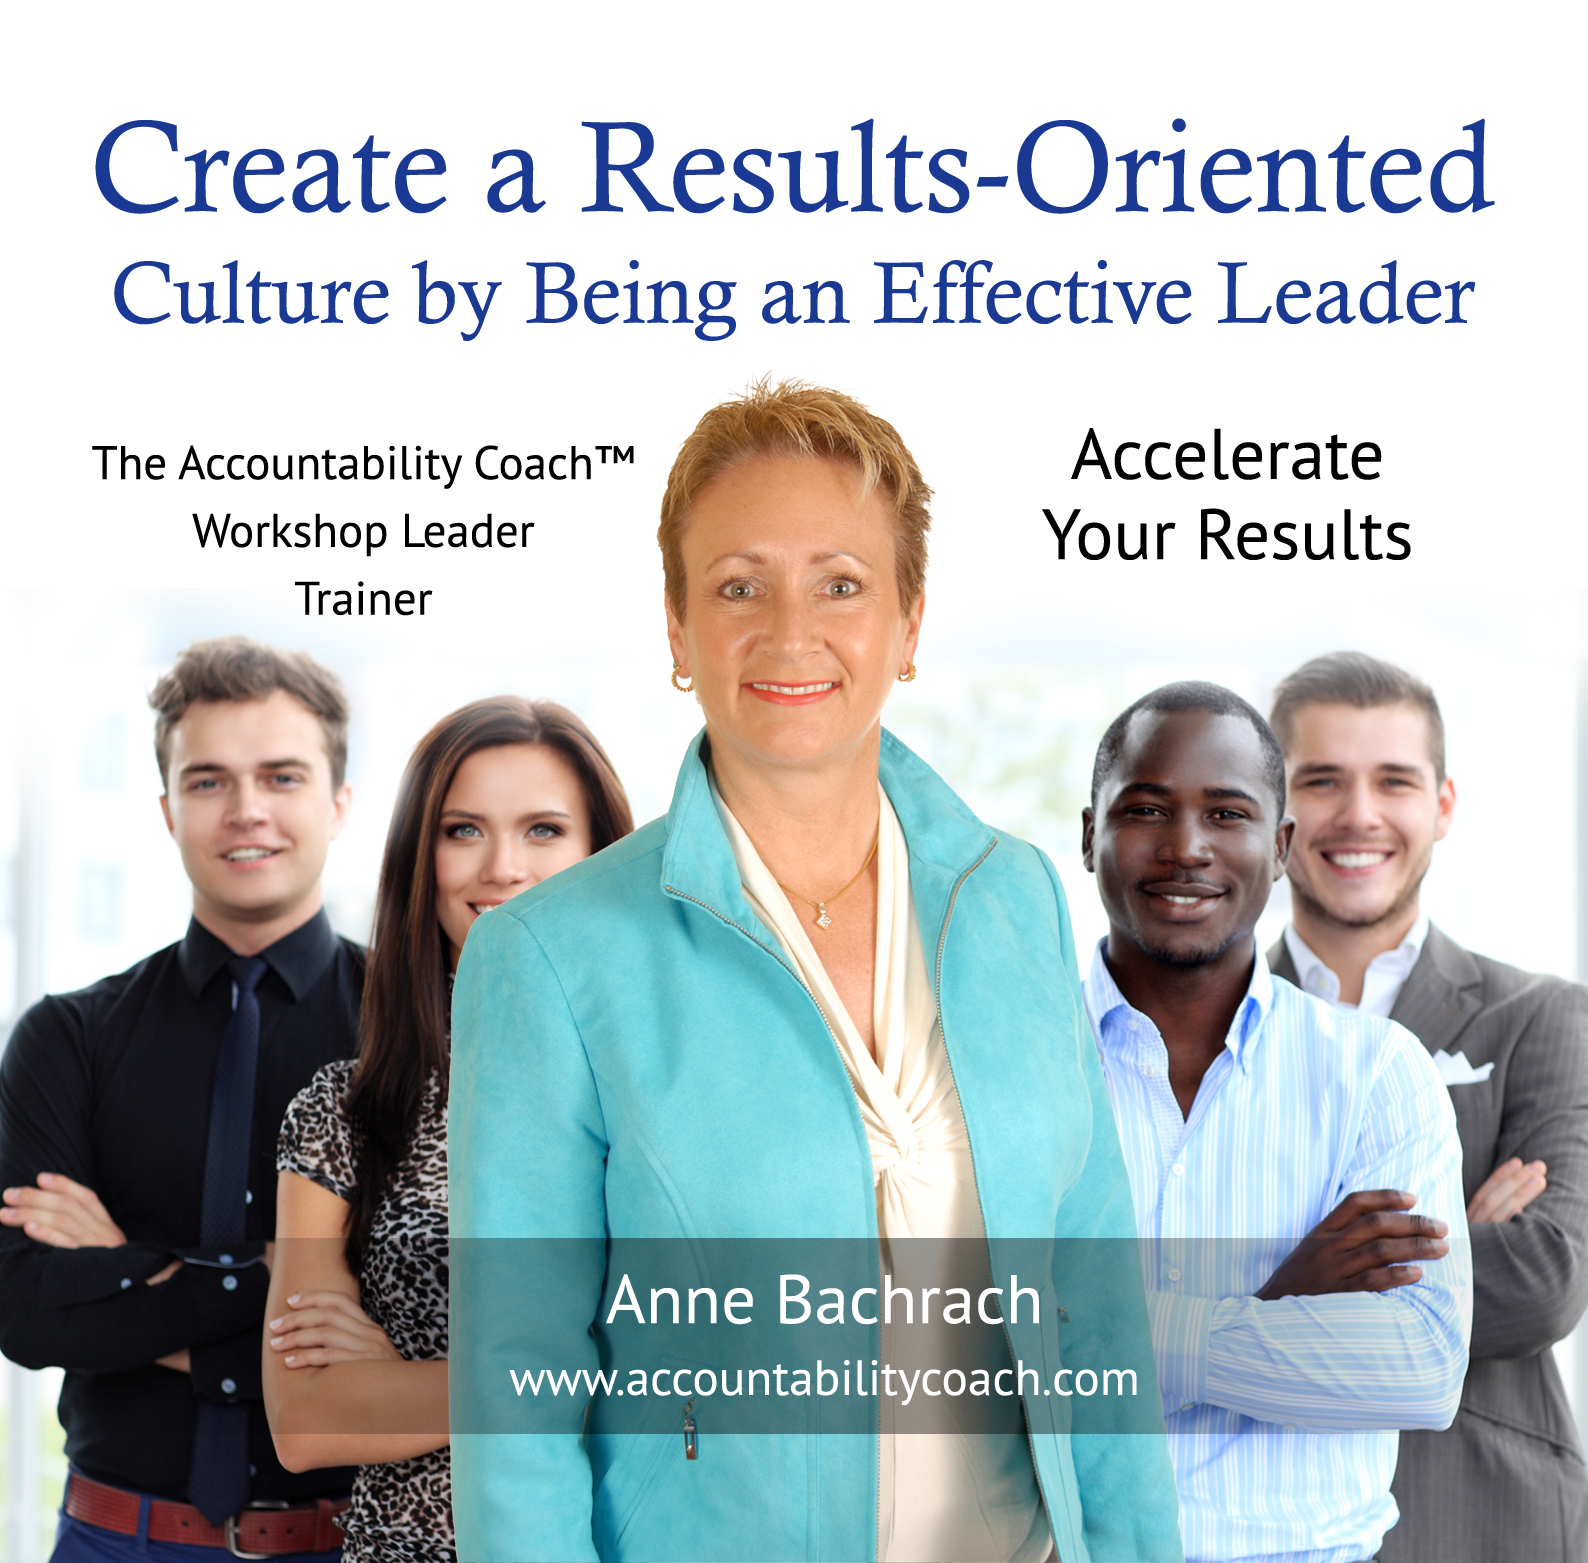 Results Oriented: Create A Results-Oriented Culture By Being An Effective Leader